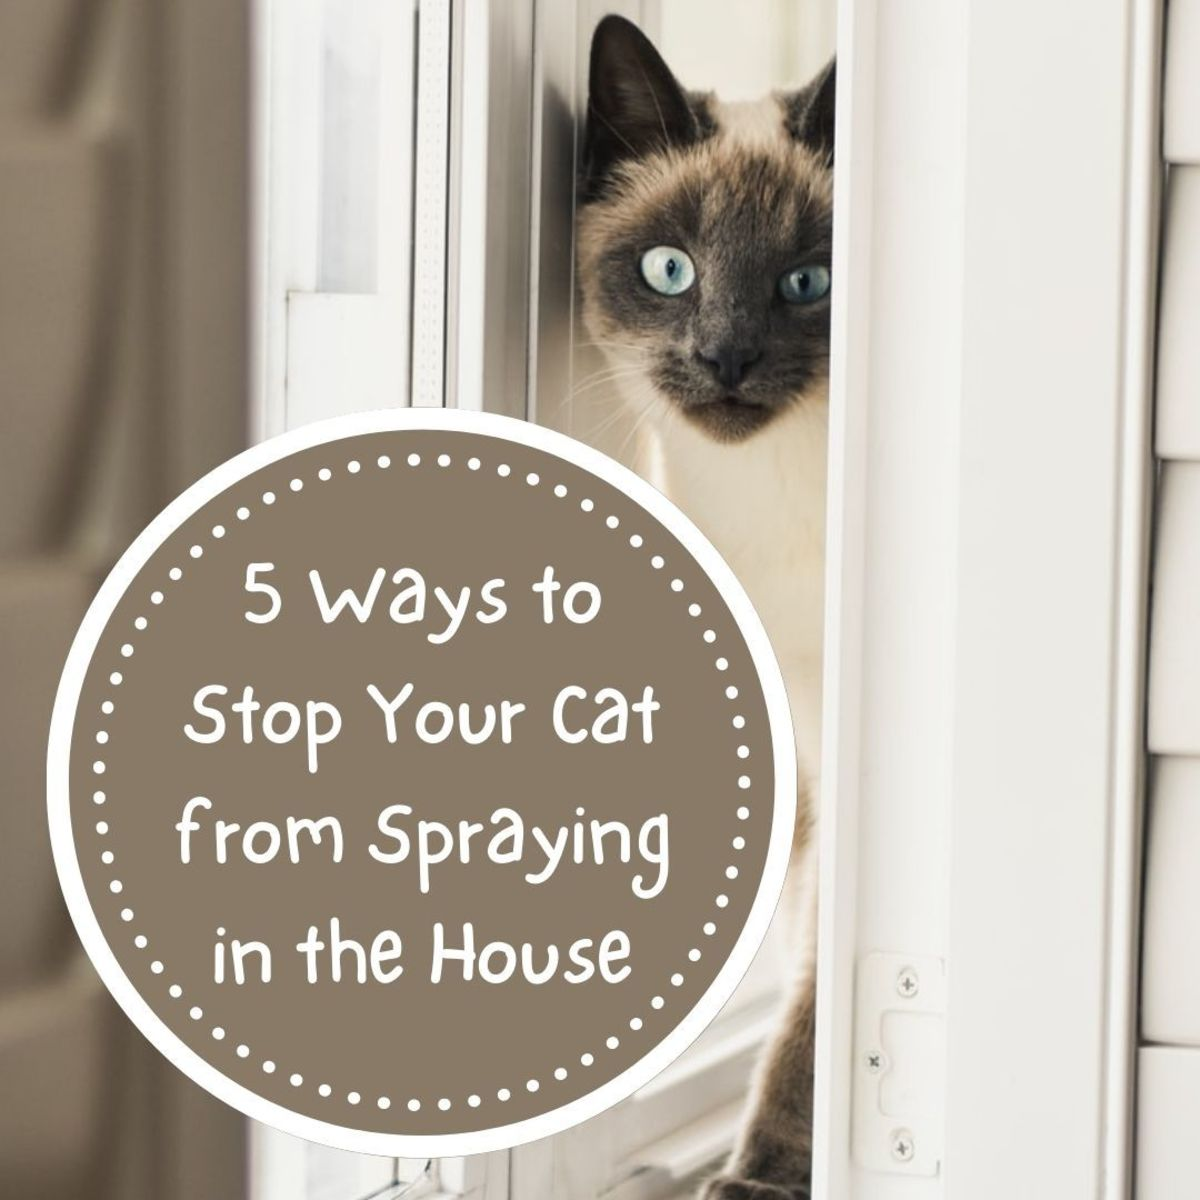 5 Ways to Stop a Cat From Spraying in the House